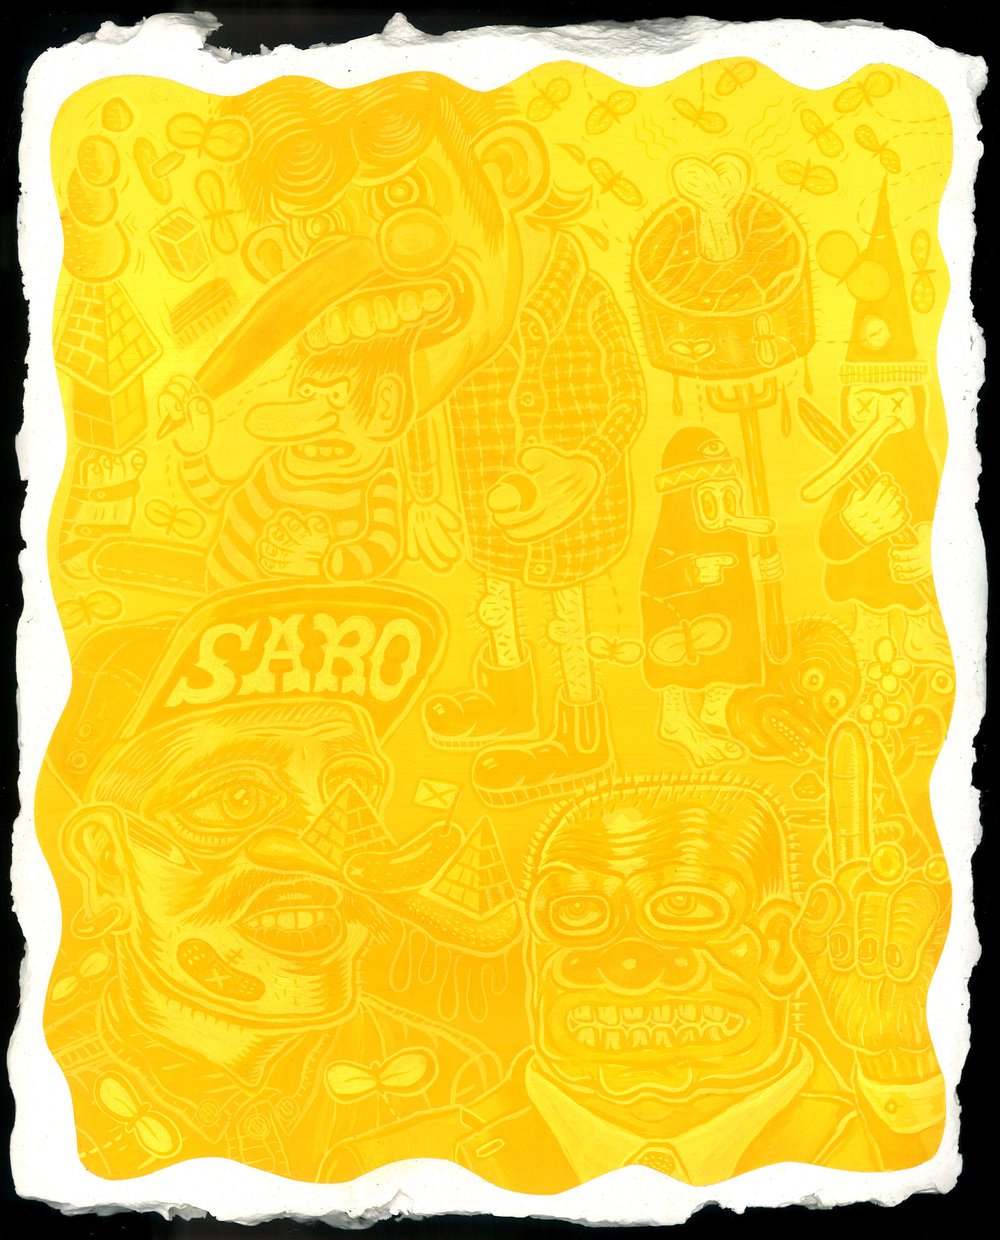 13.%22SARO%22 (yellow).jpg